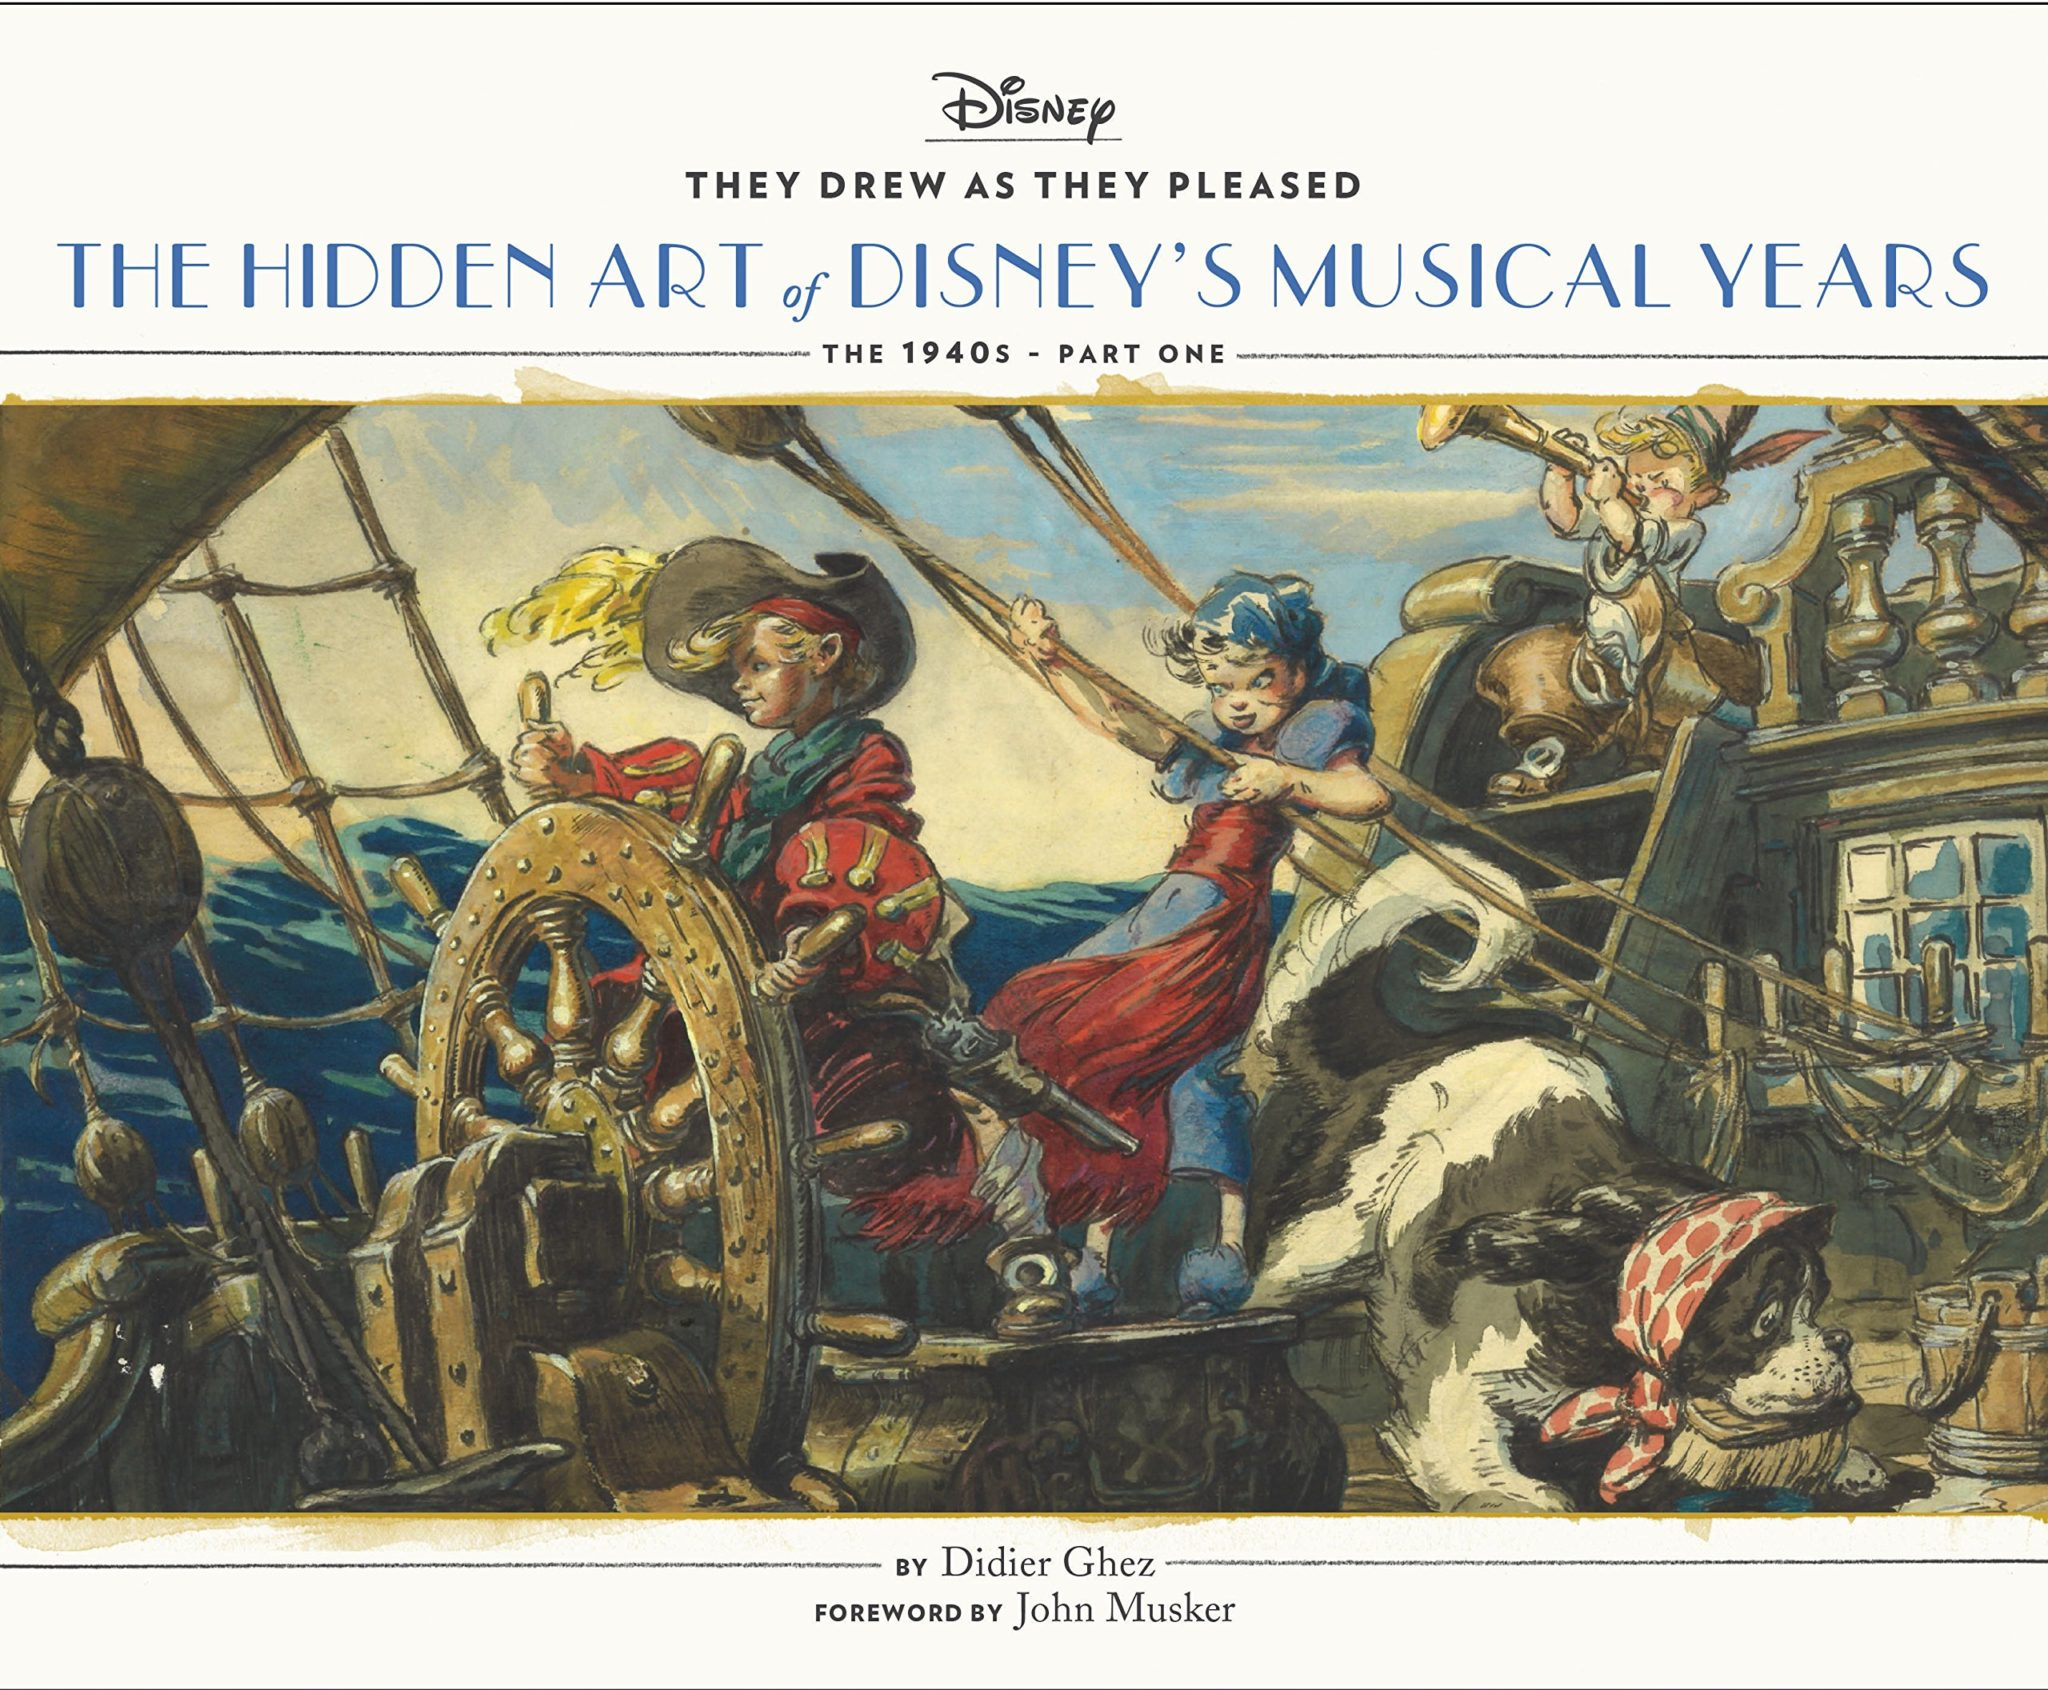 They Drew as They Pleased: The Hidden Art of Disney's Musical Years